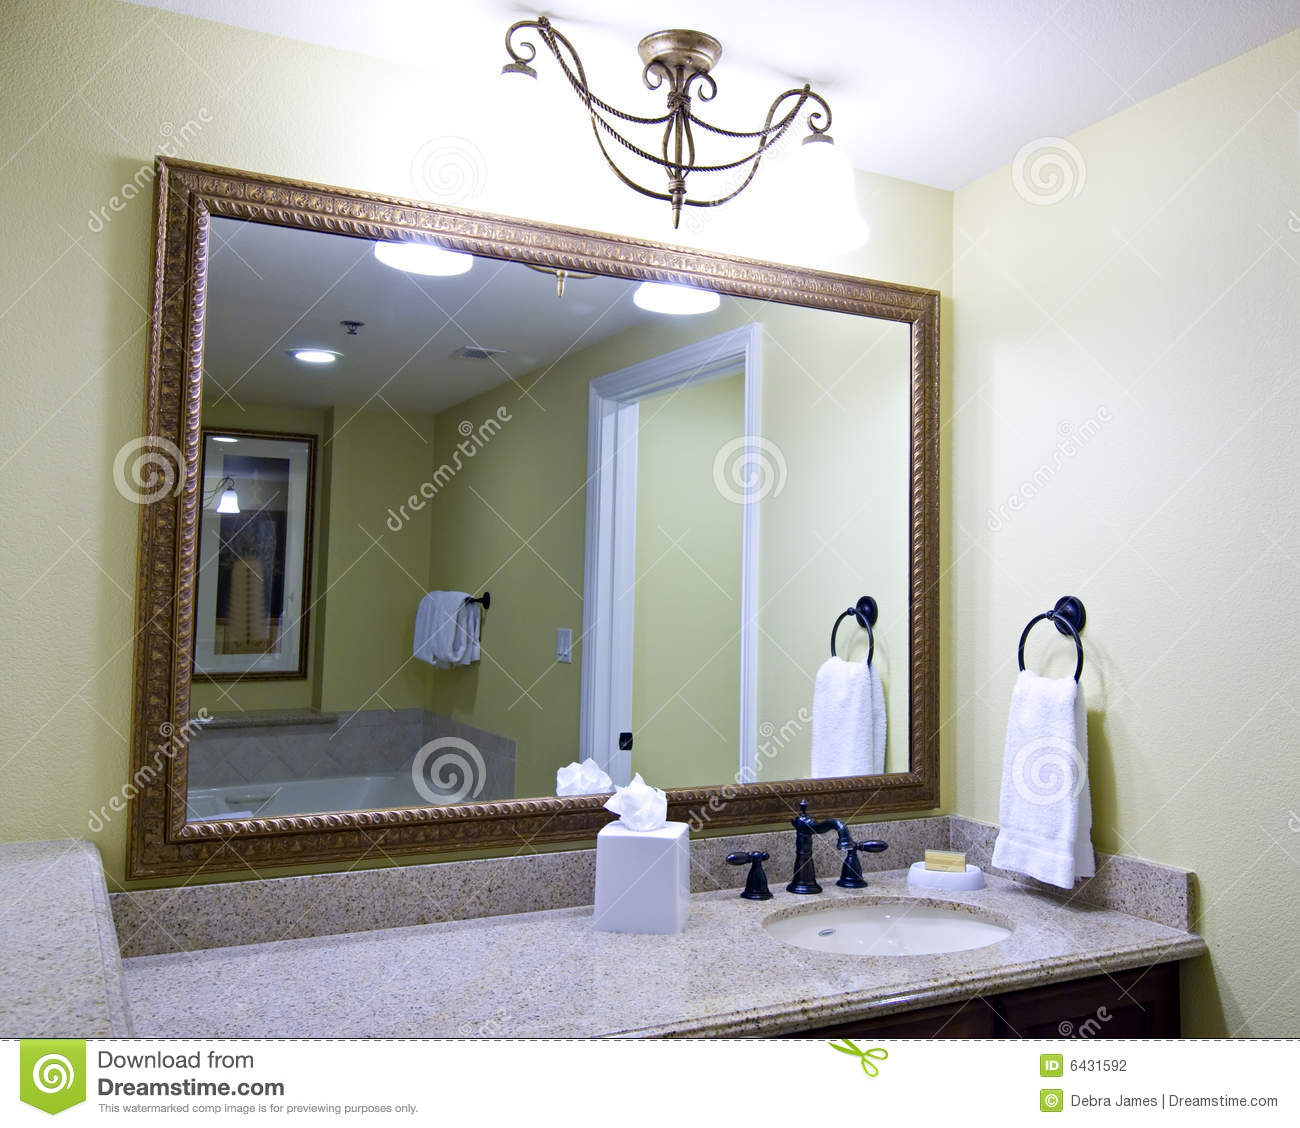 Tv In Bathroom Mirror Price Large Mirror Above Sink Stock Photography Image 6431592